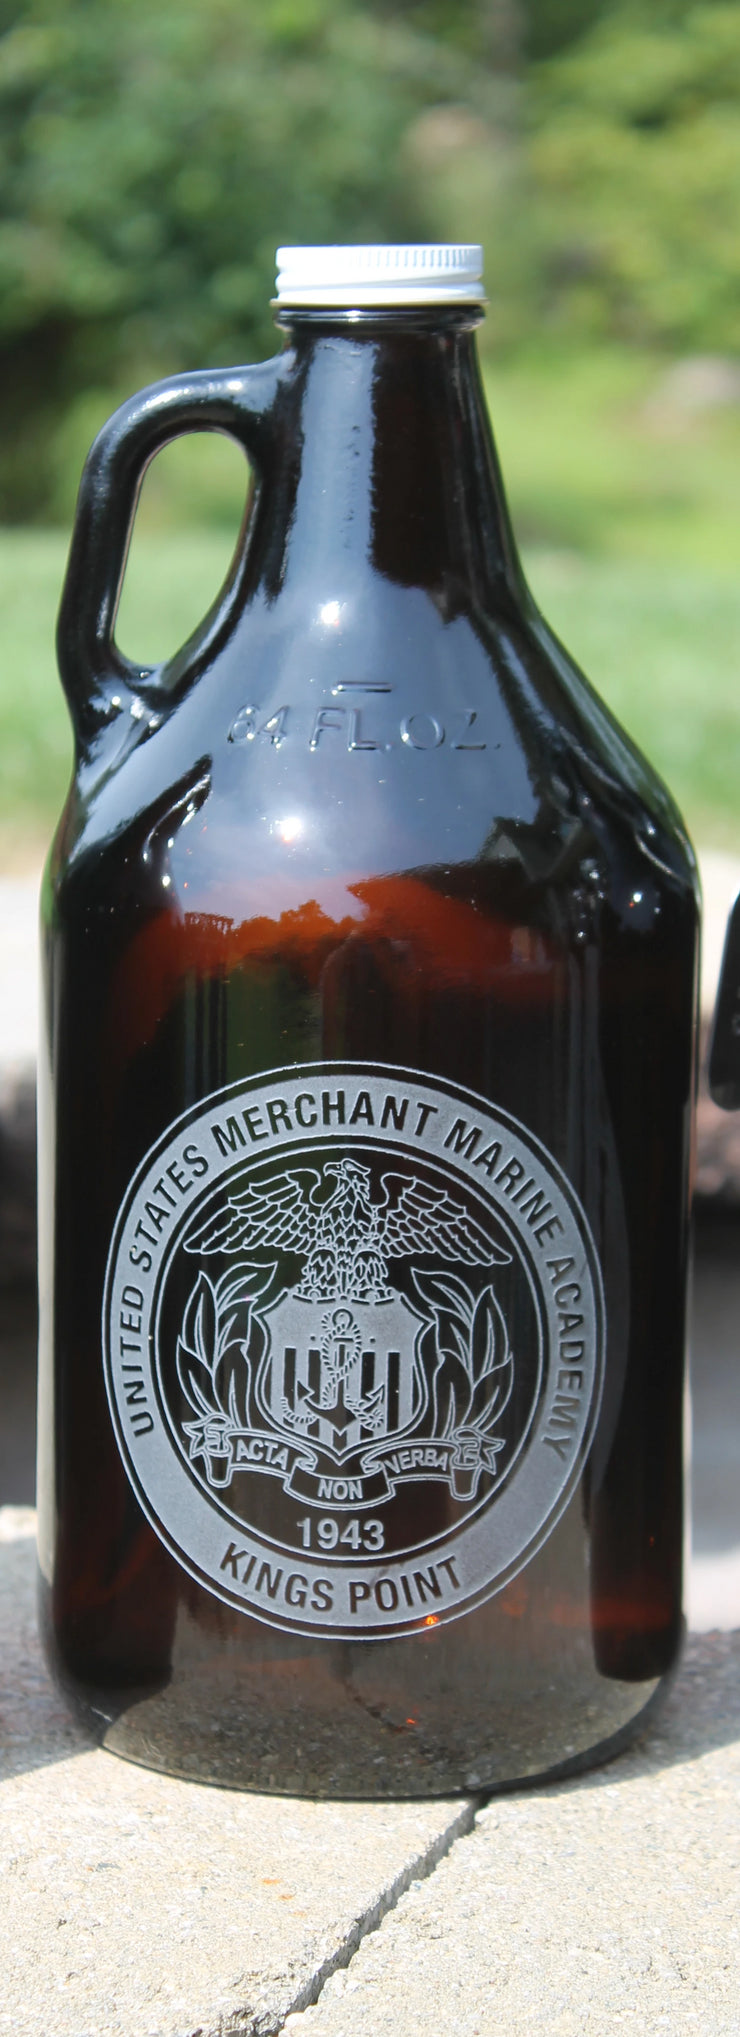 USMMA Merchant Marine Academy KP Growler Sand Carved Screw Cap graduation commencement USNA USAFA - Samstagsandmore